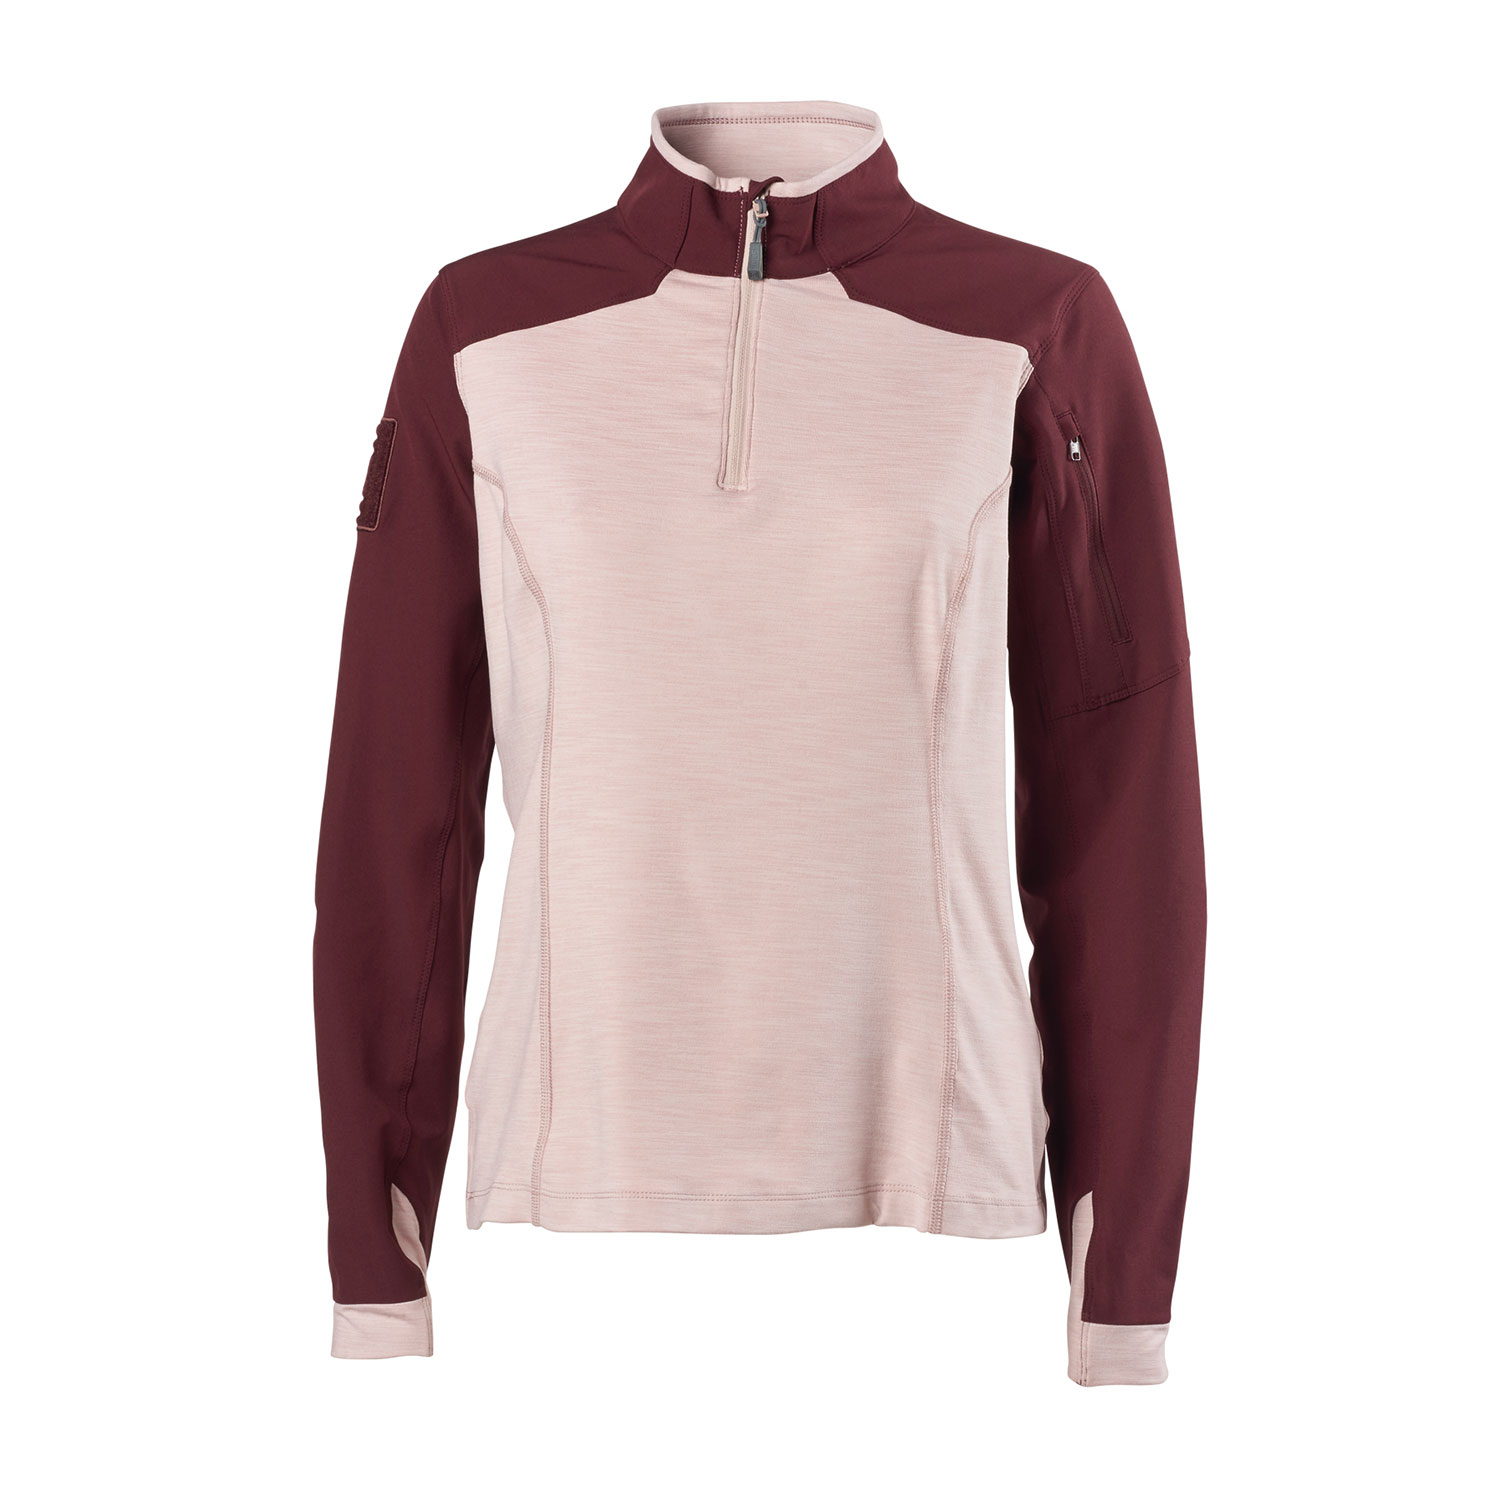 5.11 Women's Rapid Half Zip